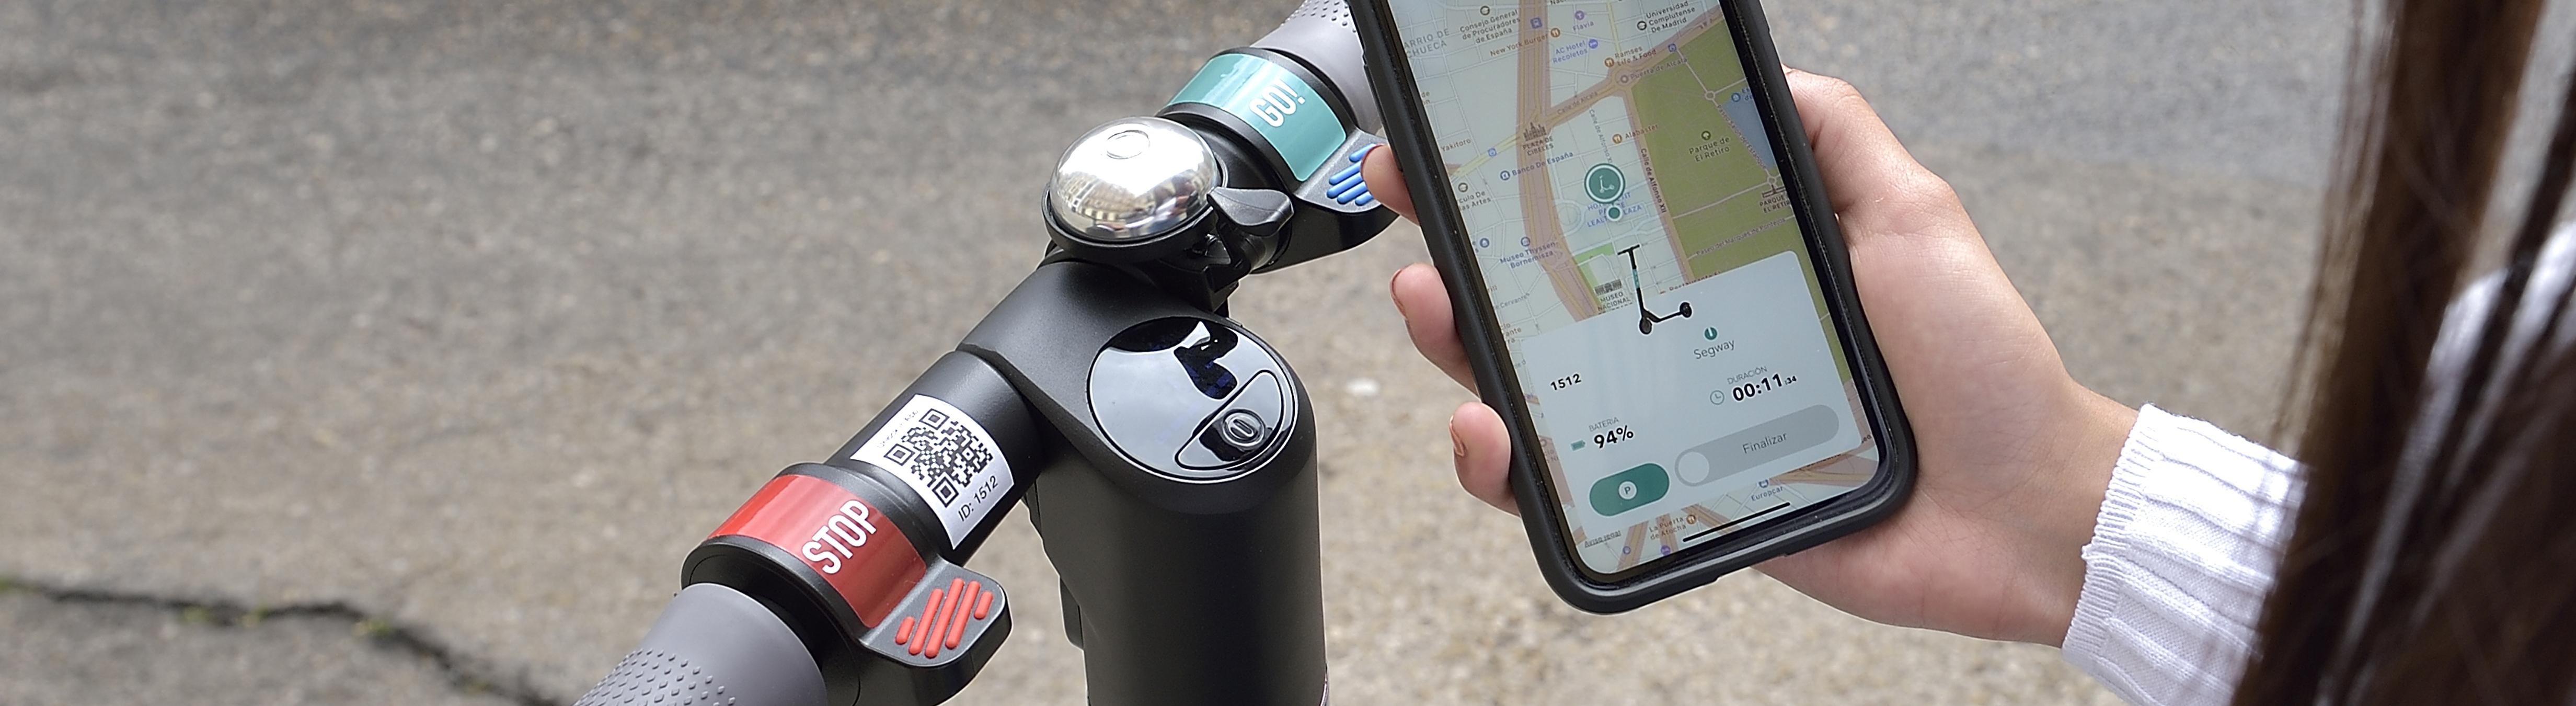 Apps, services and sharing: the future's micromobility according to SEAT